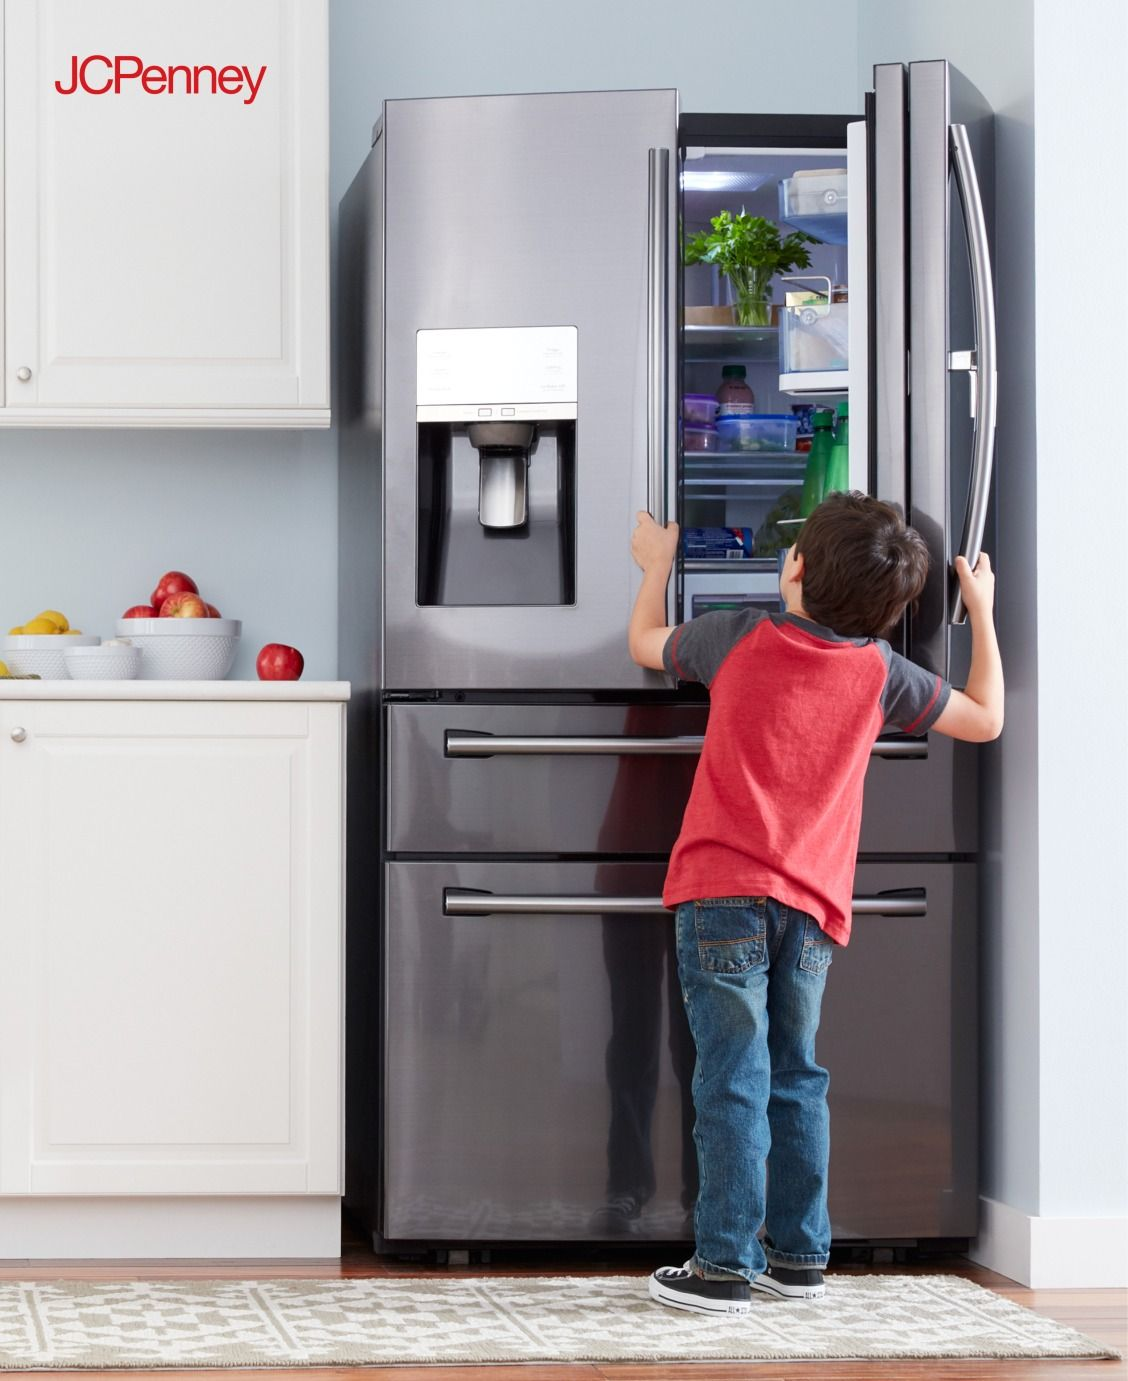 Jcpenney Home Store Locator: Tap To Shop! // Add New Sleek Kitchen Appliances To Your